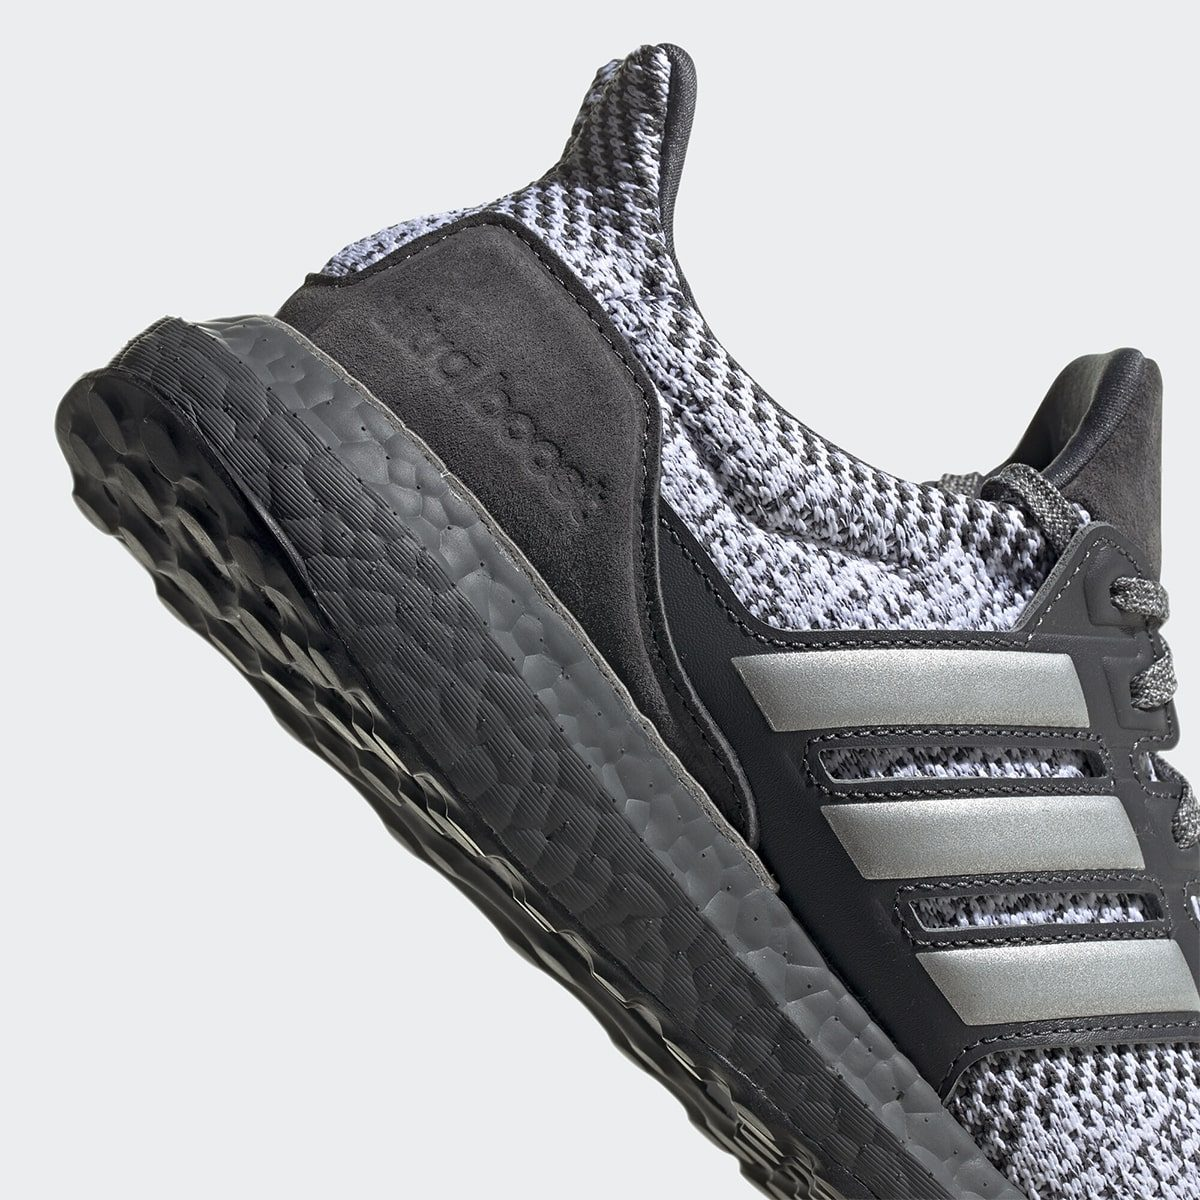 adidas Works in Leather, Suede, and New Weaves to the Ultra BOOST DNA